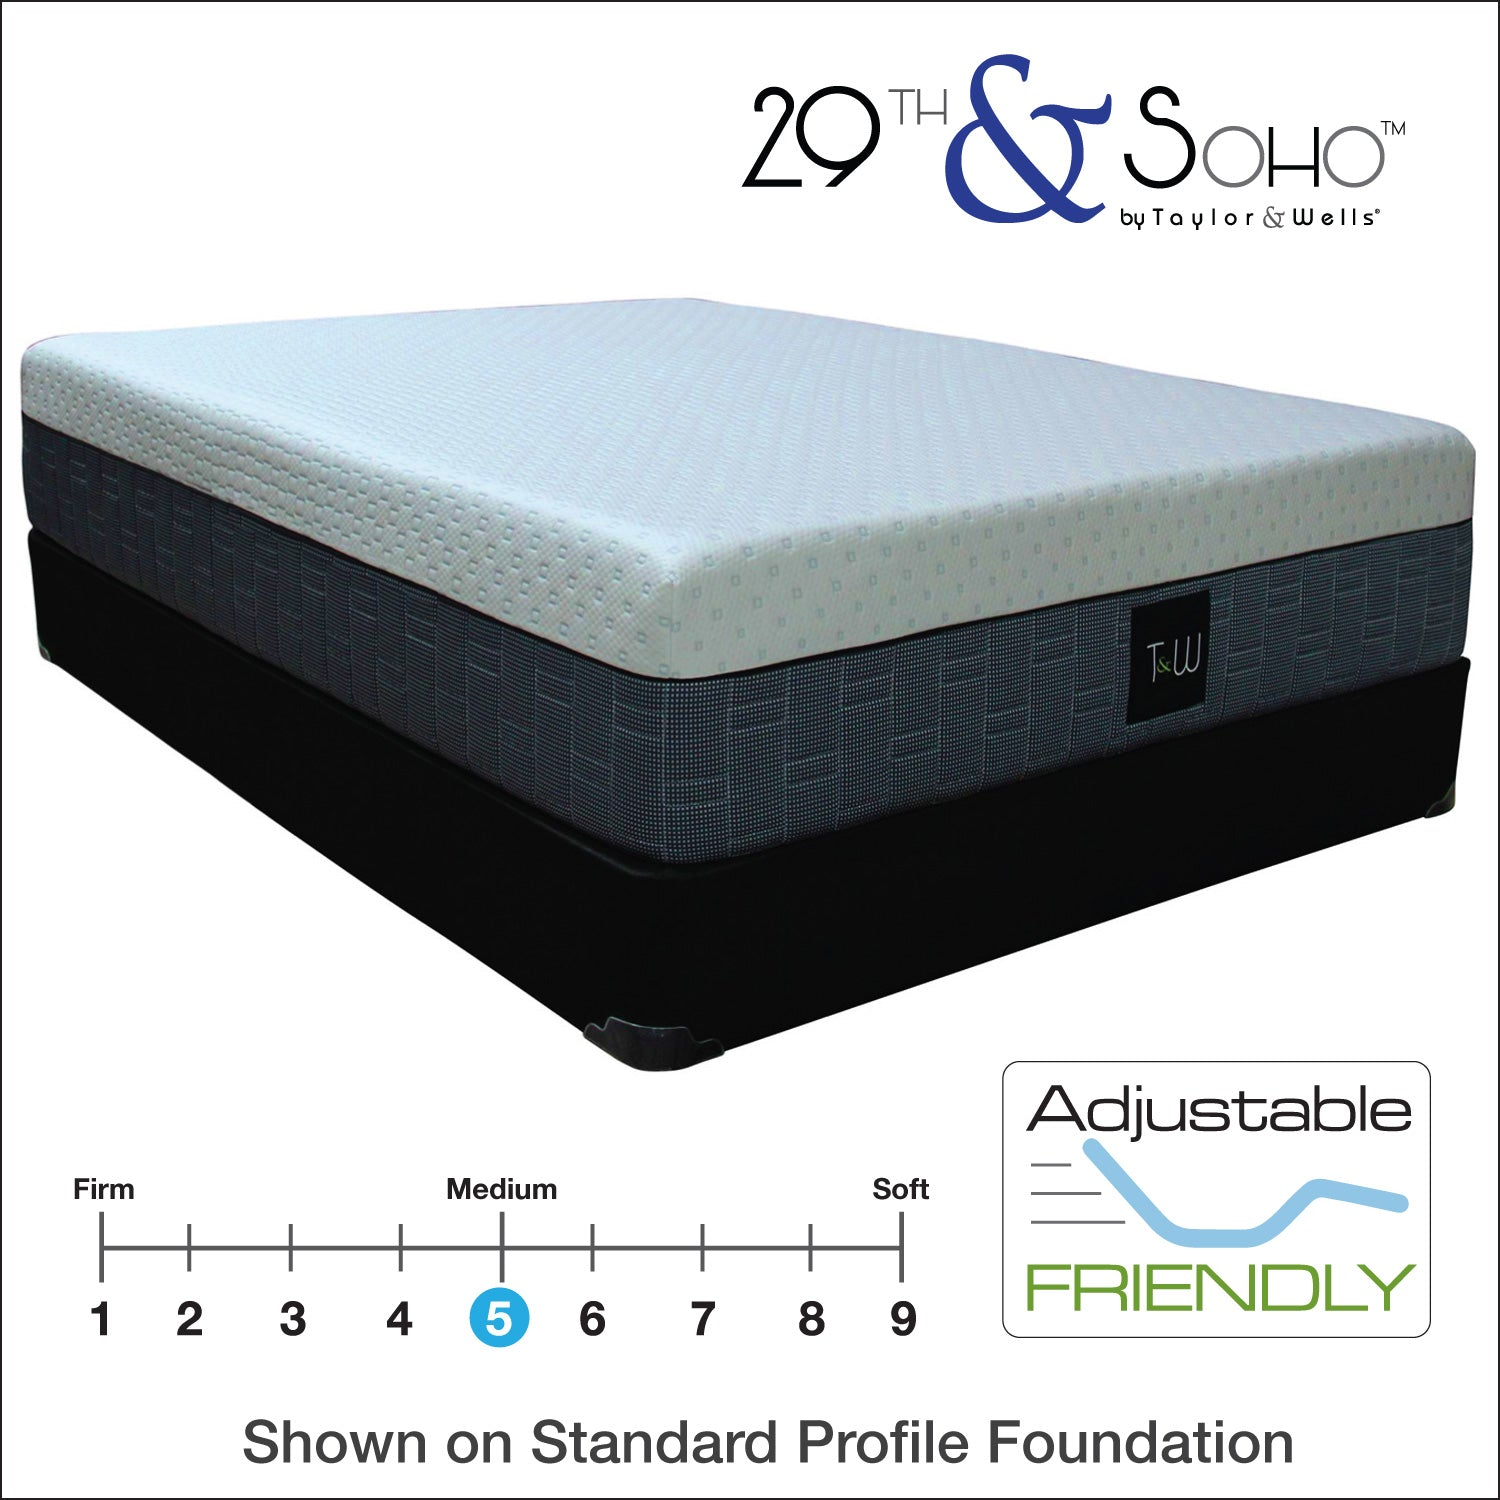 "29th & Soho 29|14 Hybrid Plush 14"" Mattress"